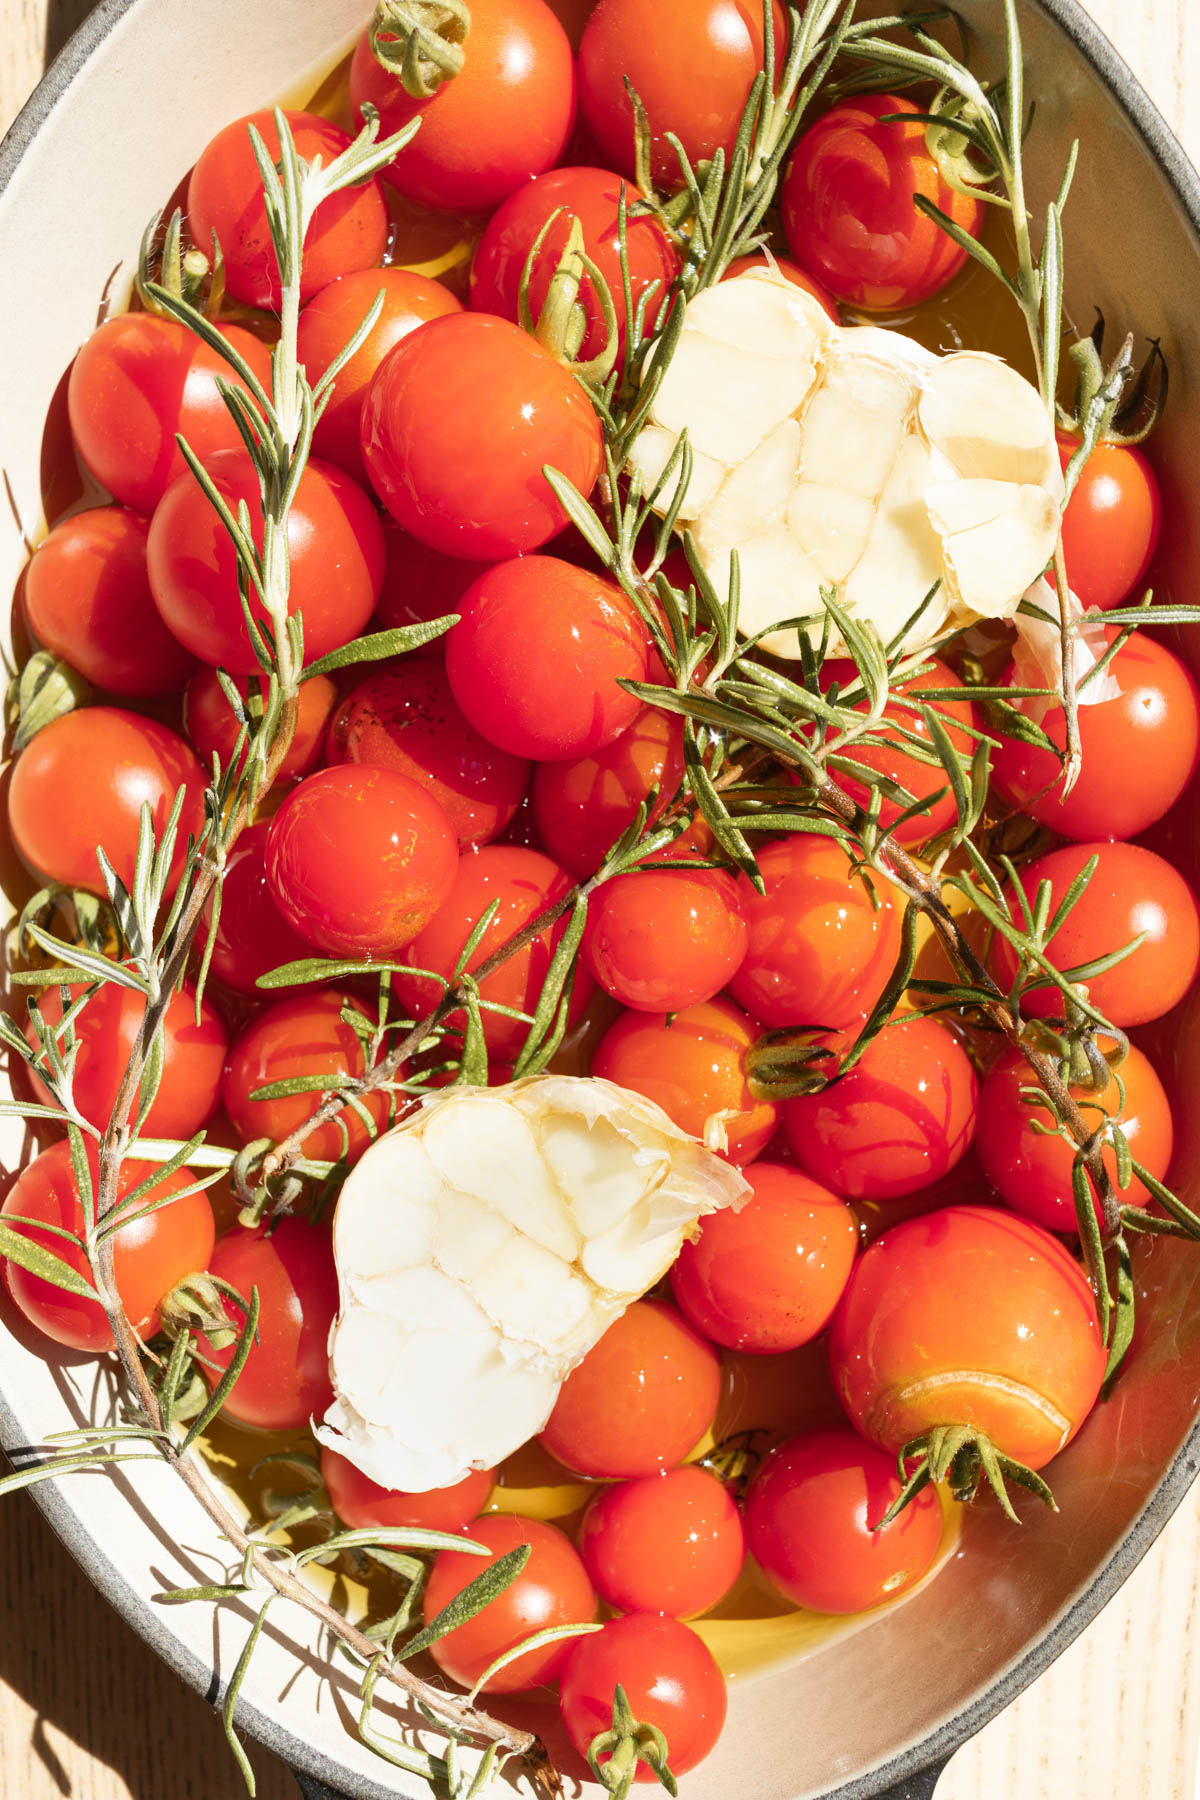 A close up of cherry tomatoes with garlic and rosemary.